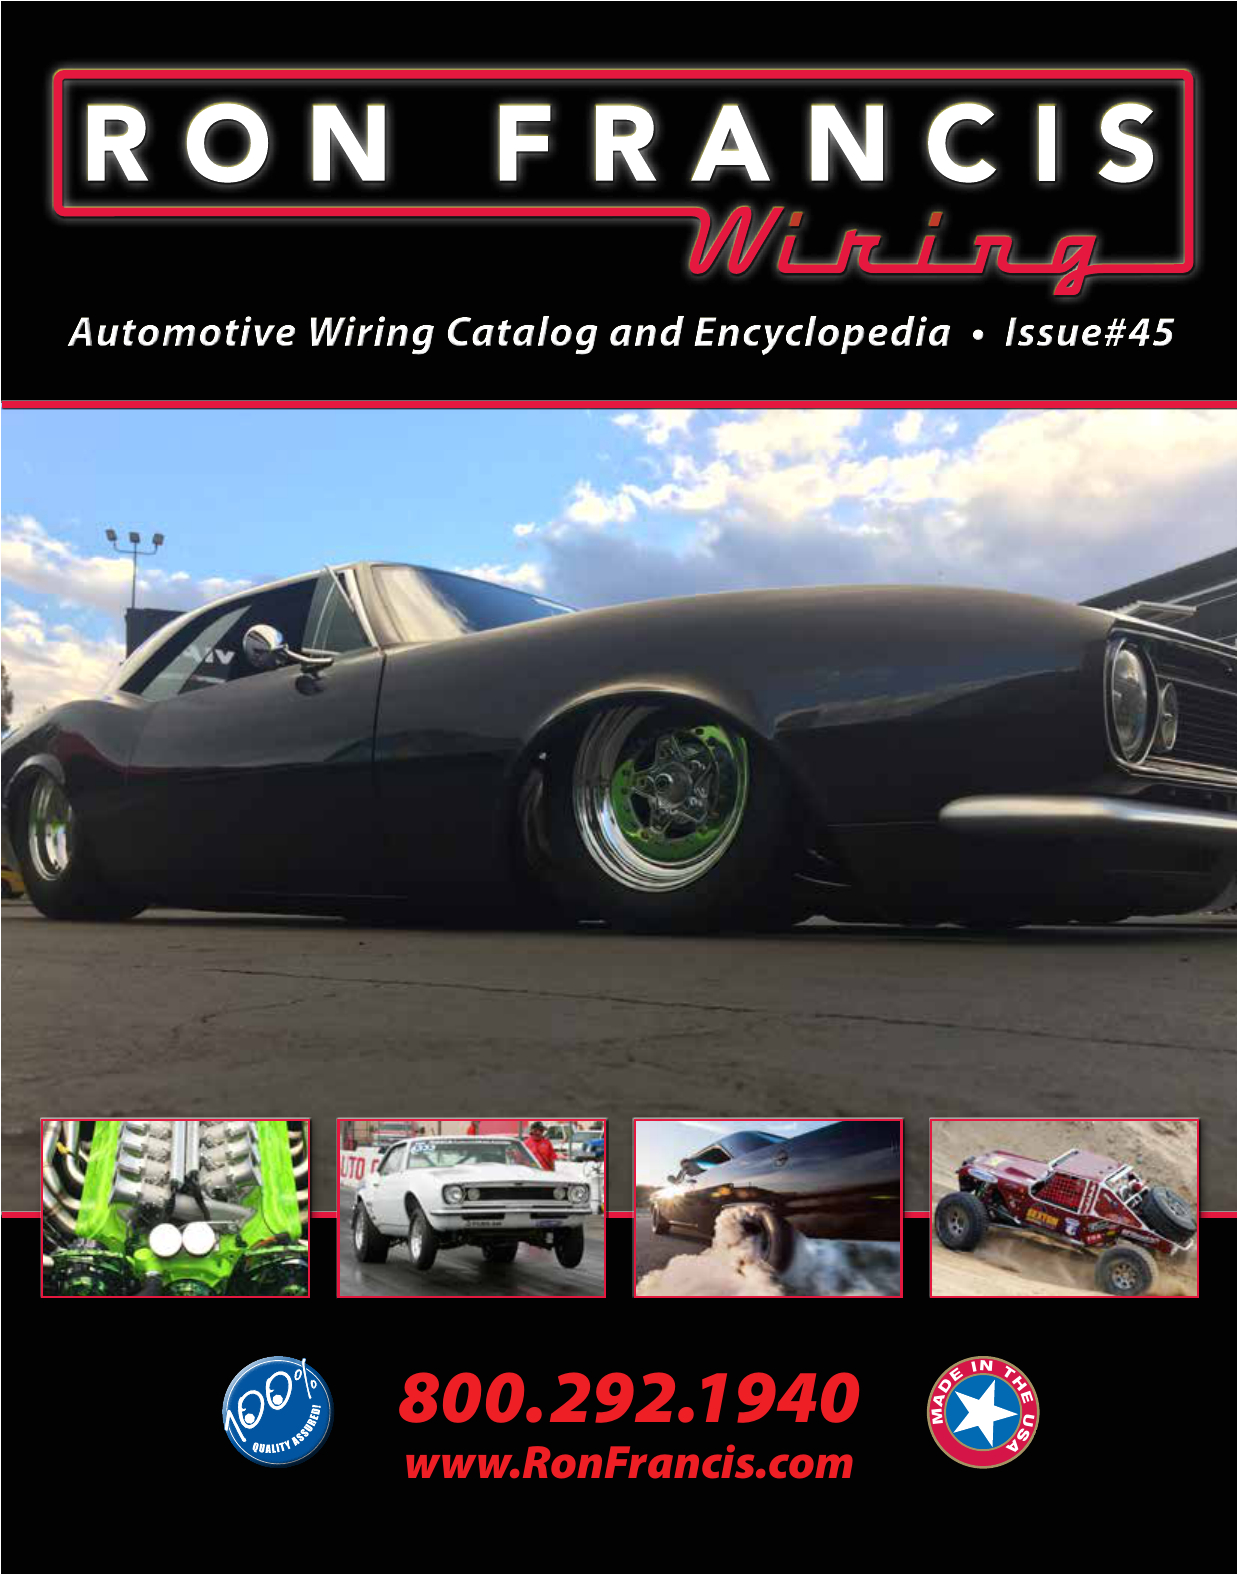 2017 rfw catalog ron francis wiring